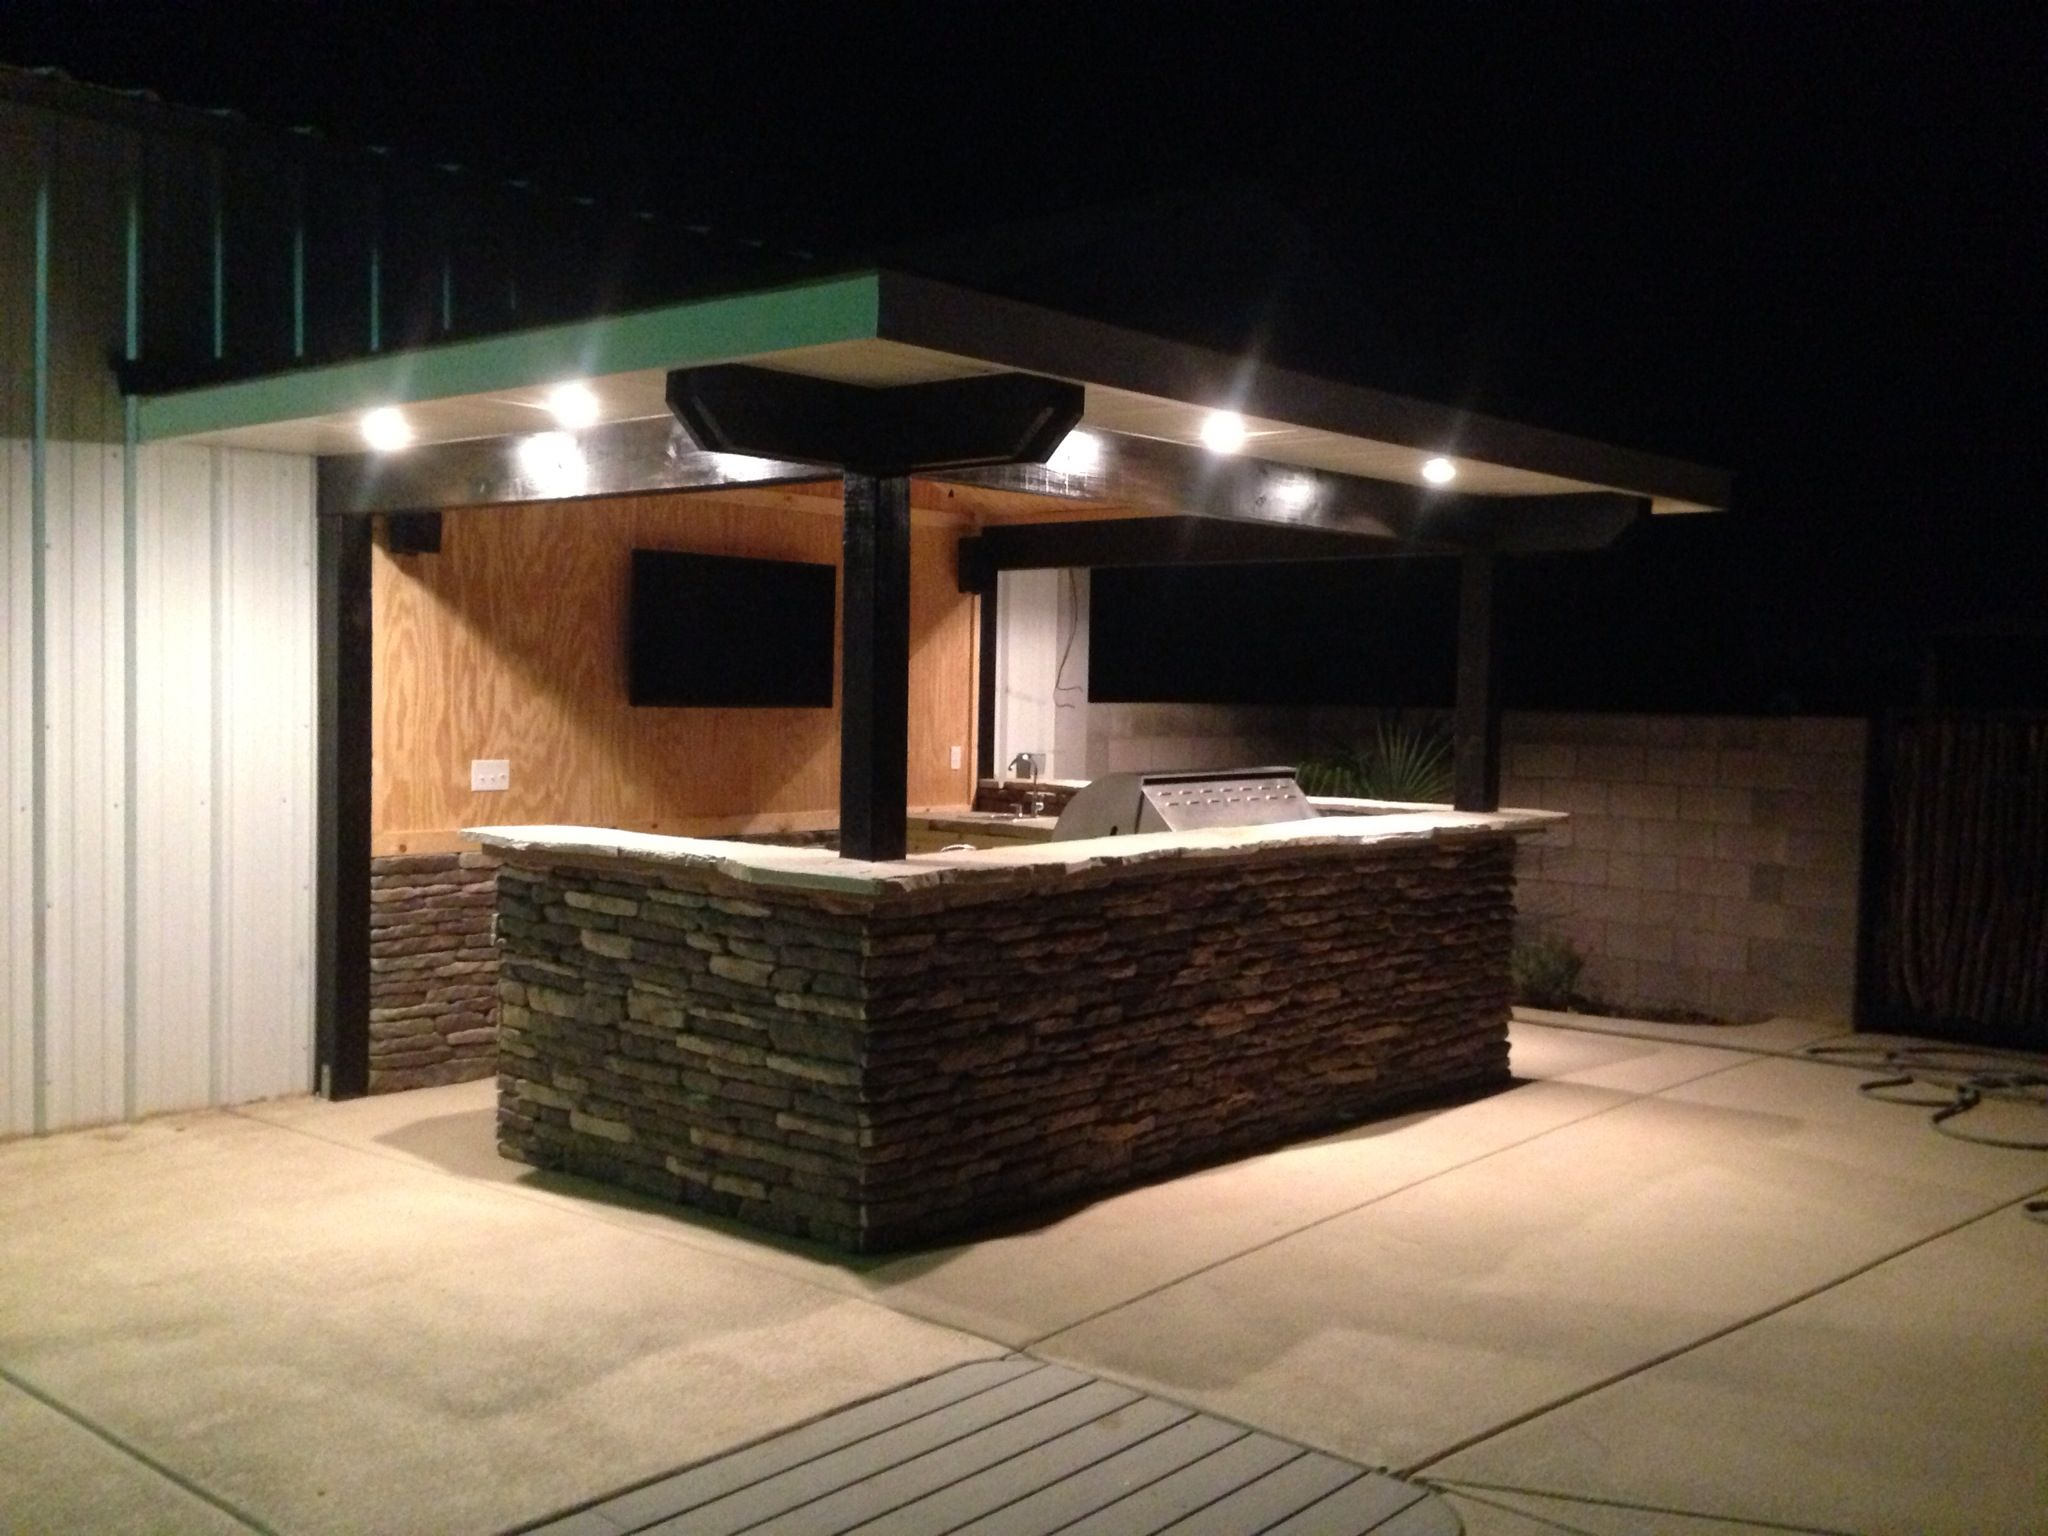 Complete Outdoor Kitchen Finally Finished Poolside Outdoor Kitchen Complete With Hibachi